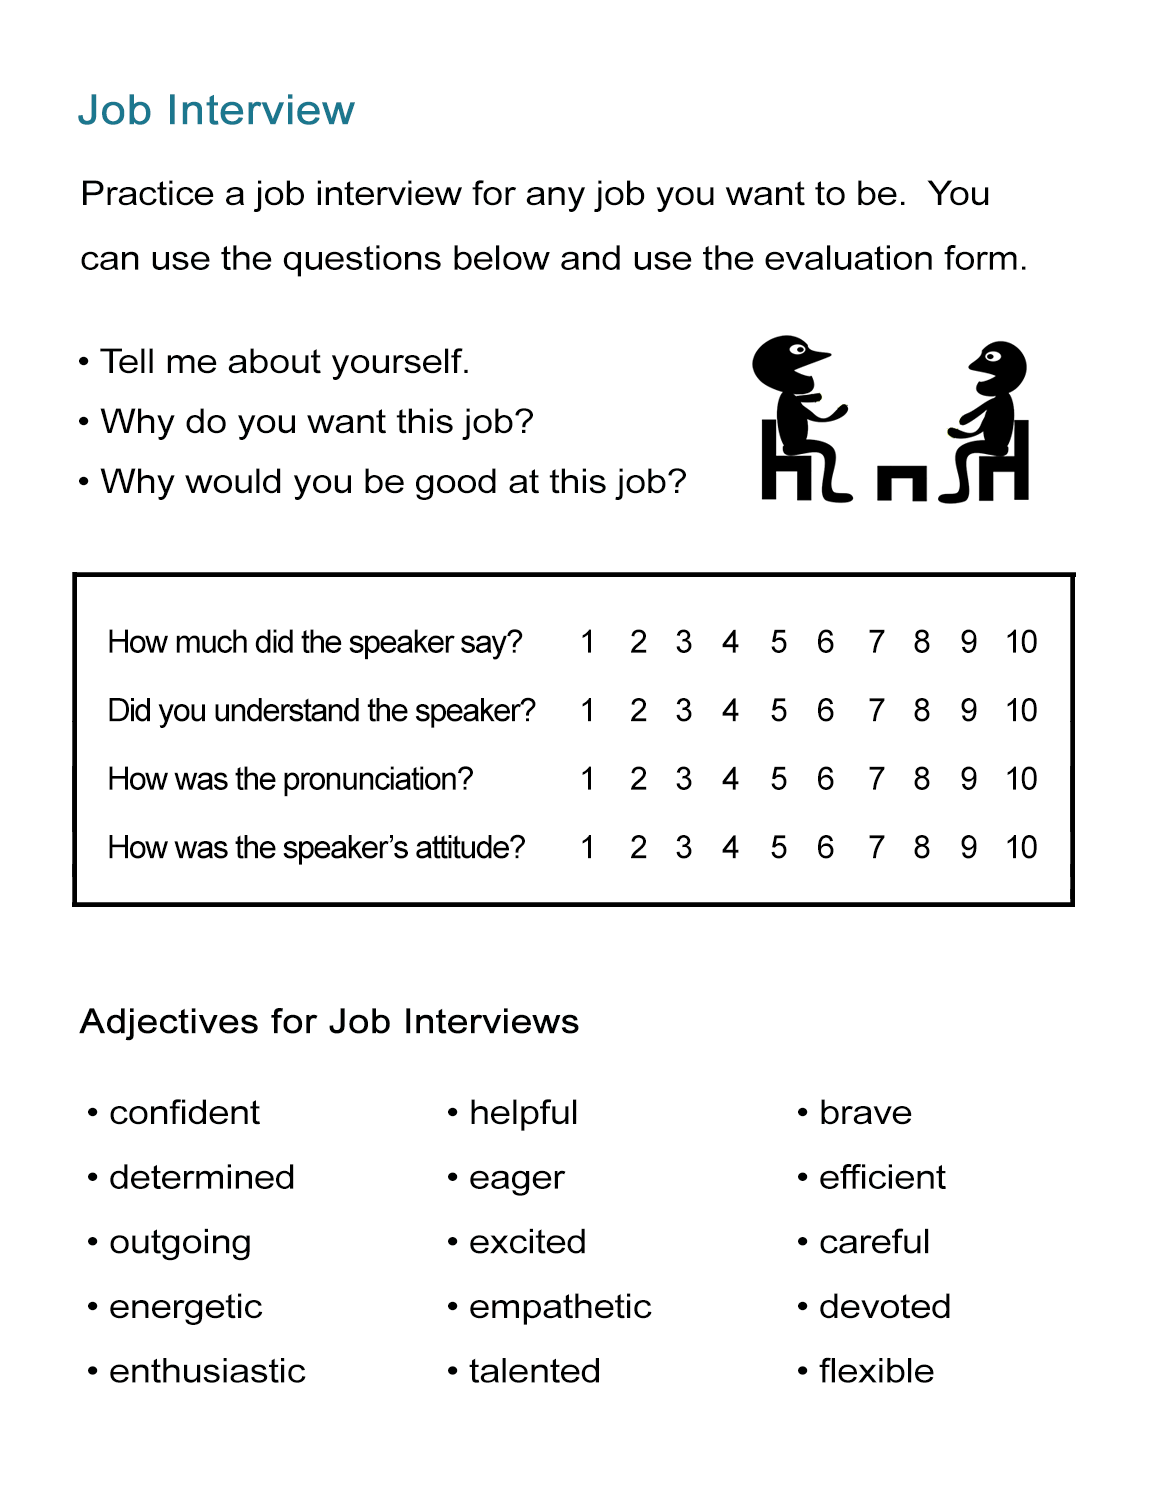 Worksheets Job Interview Worksheets job interview practice adjectives for resumes all esl resumes